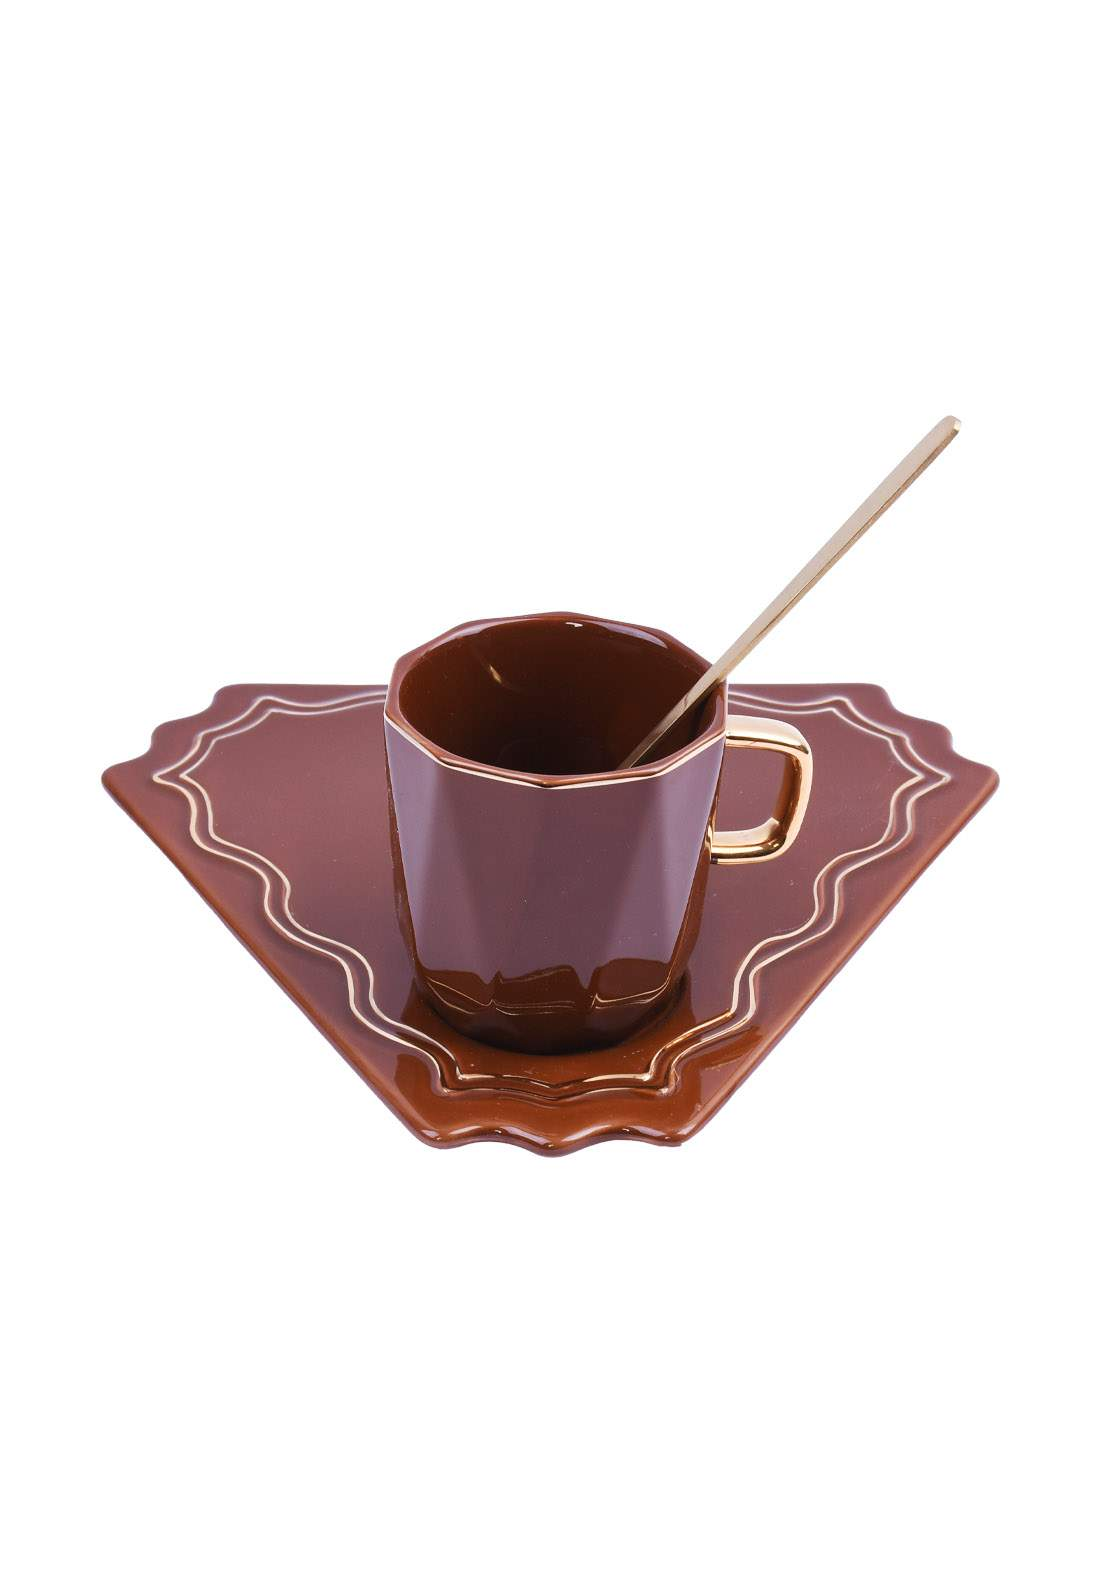 cup of coffee كوب قهوة بني اللون